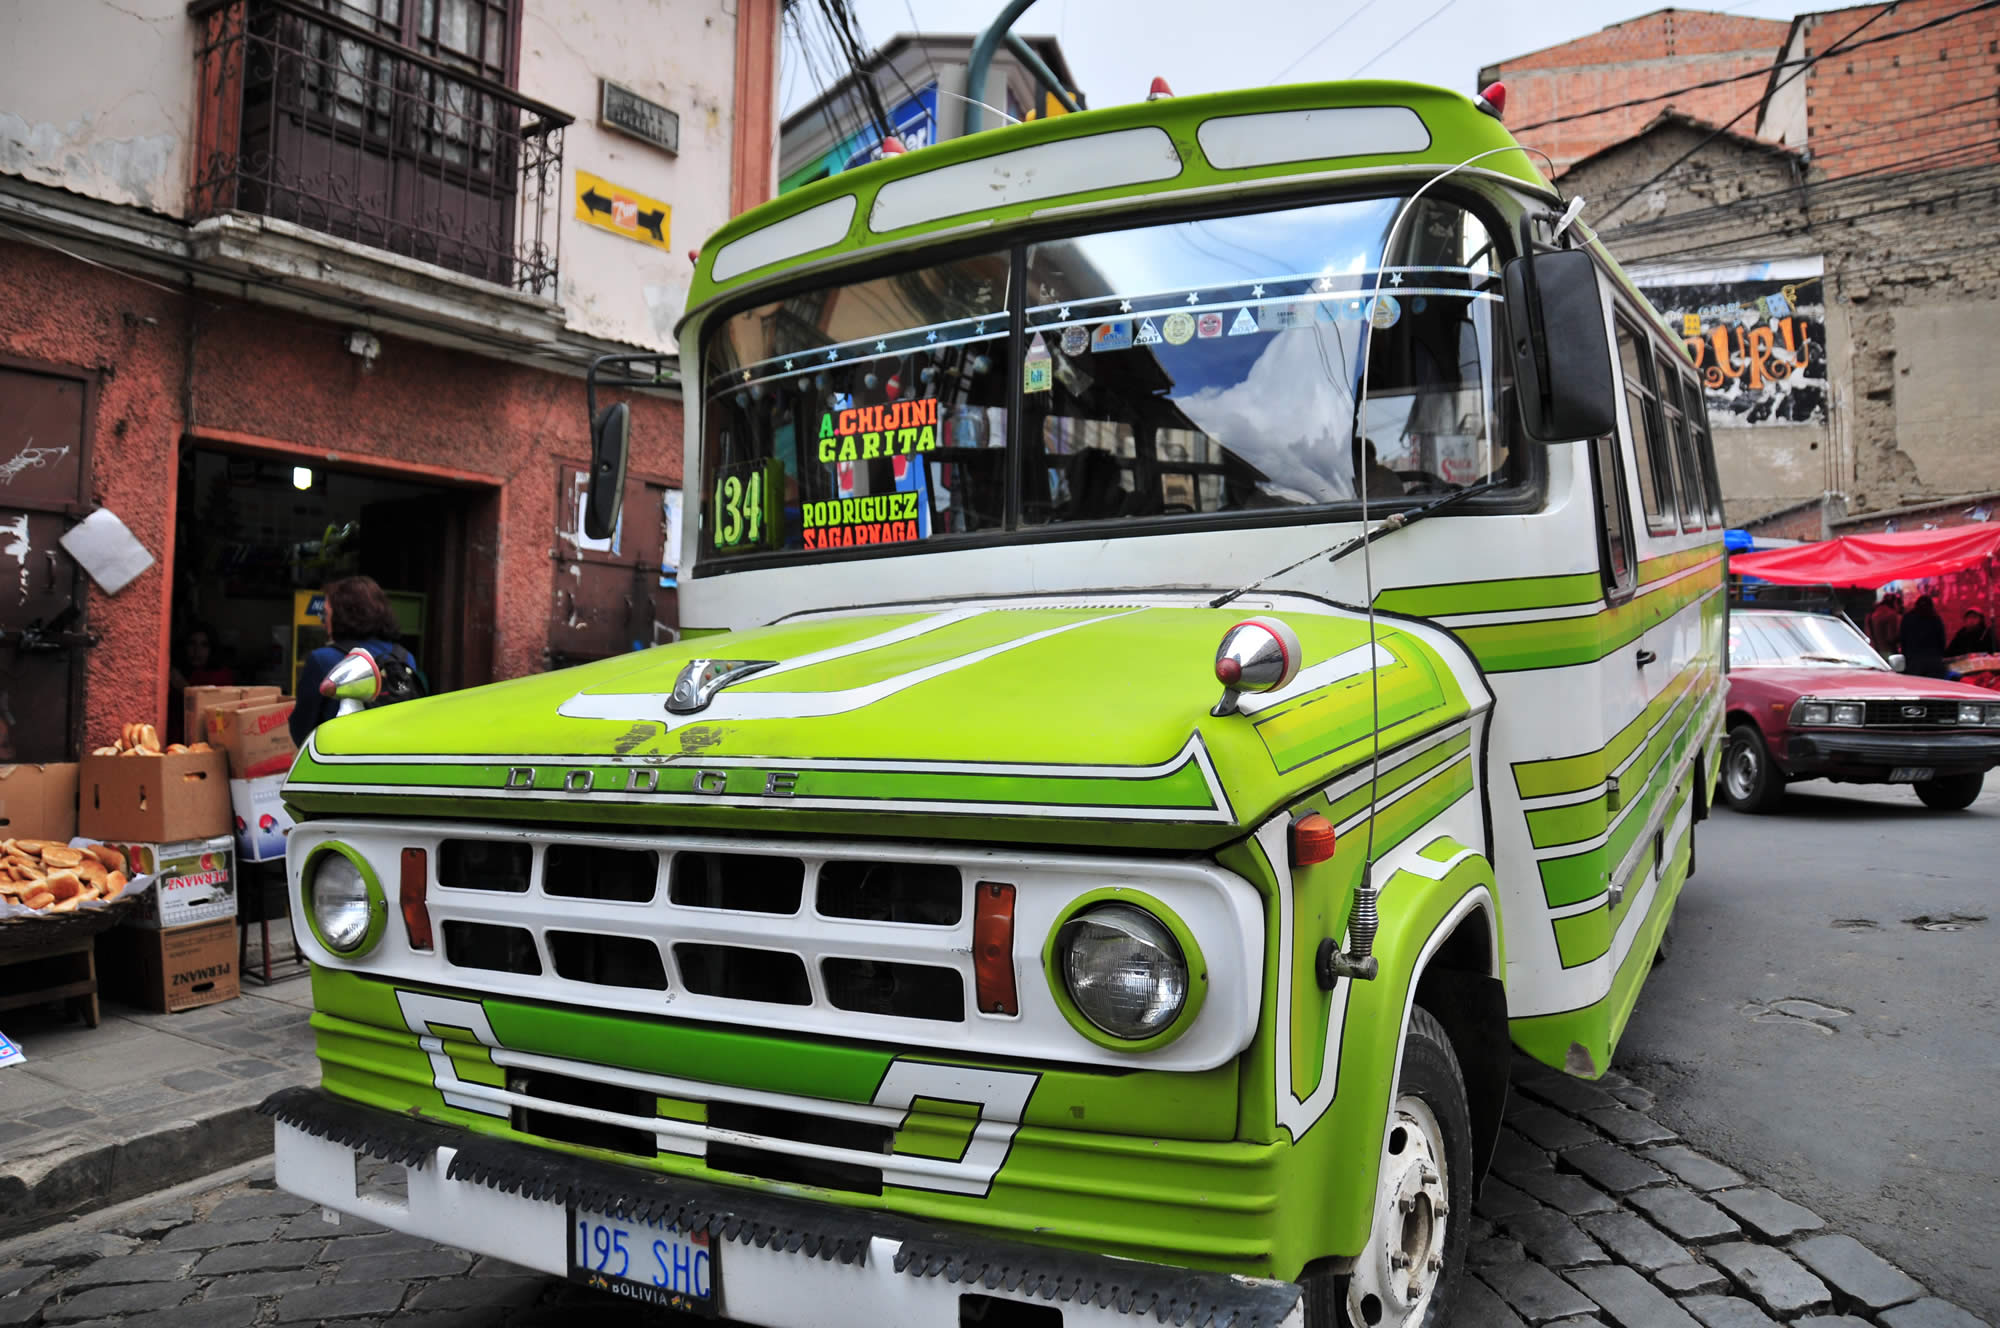 Transportation in Bolivia - Bus, Micro, Minibus, Taxi, Trufi, Information